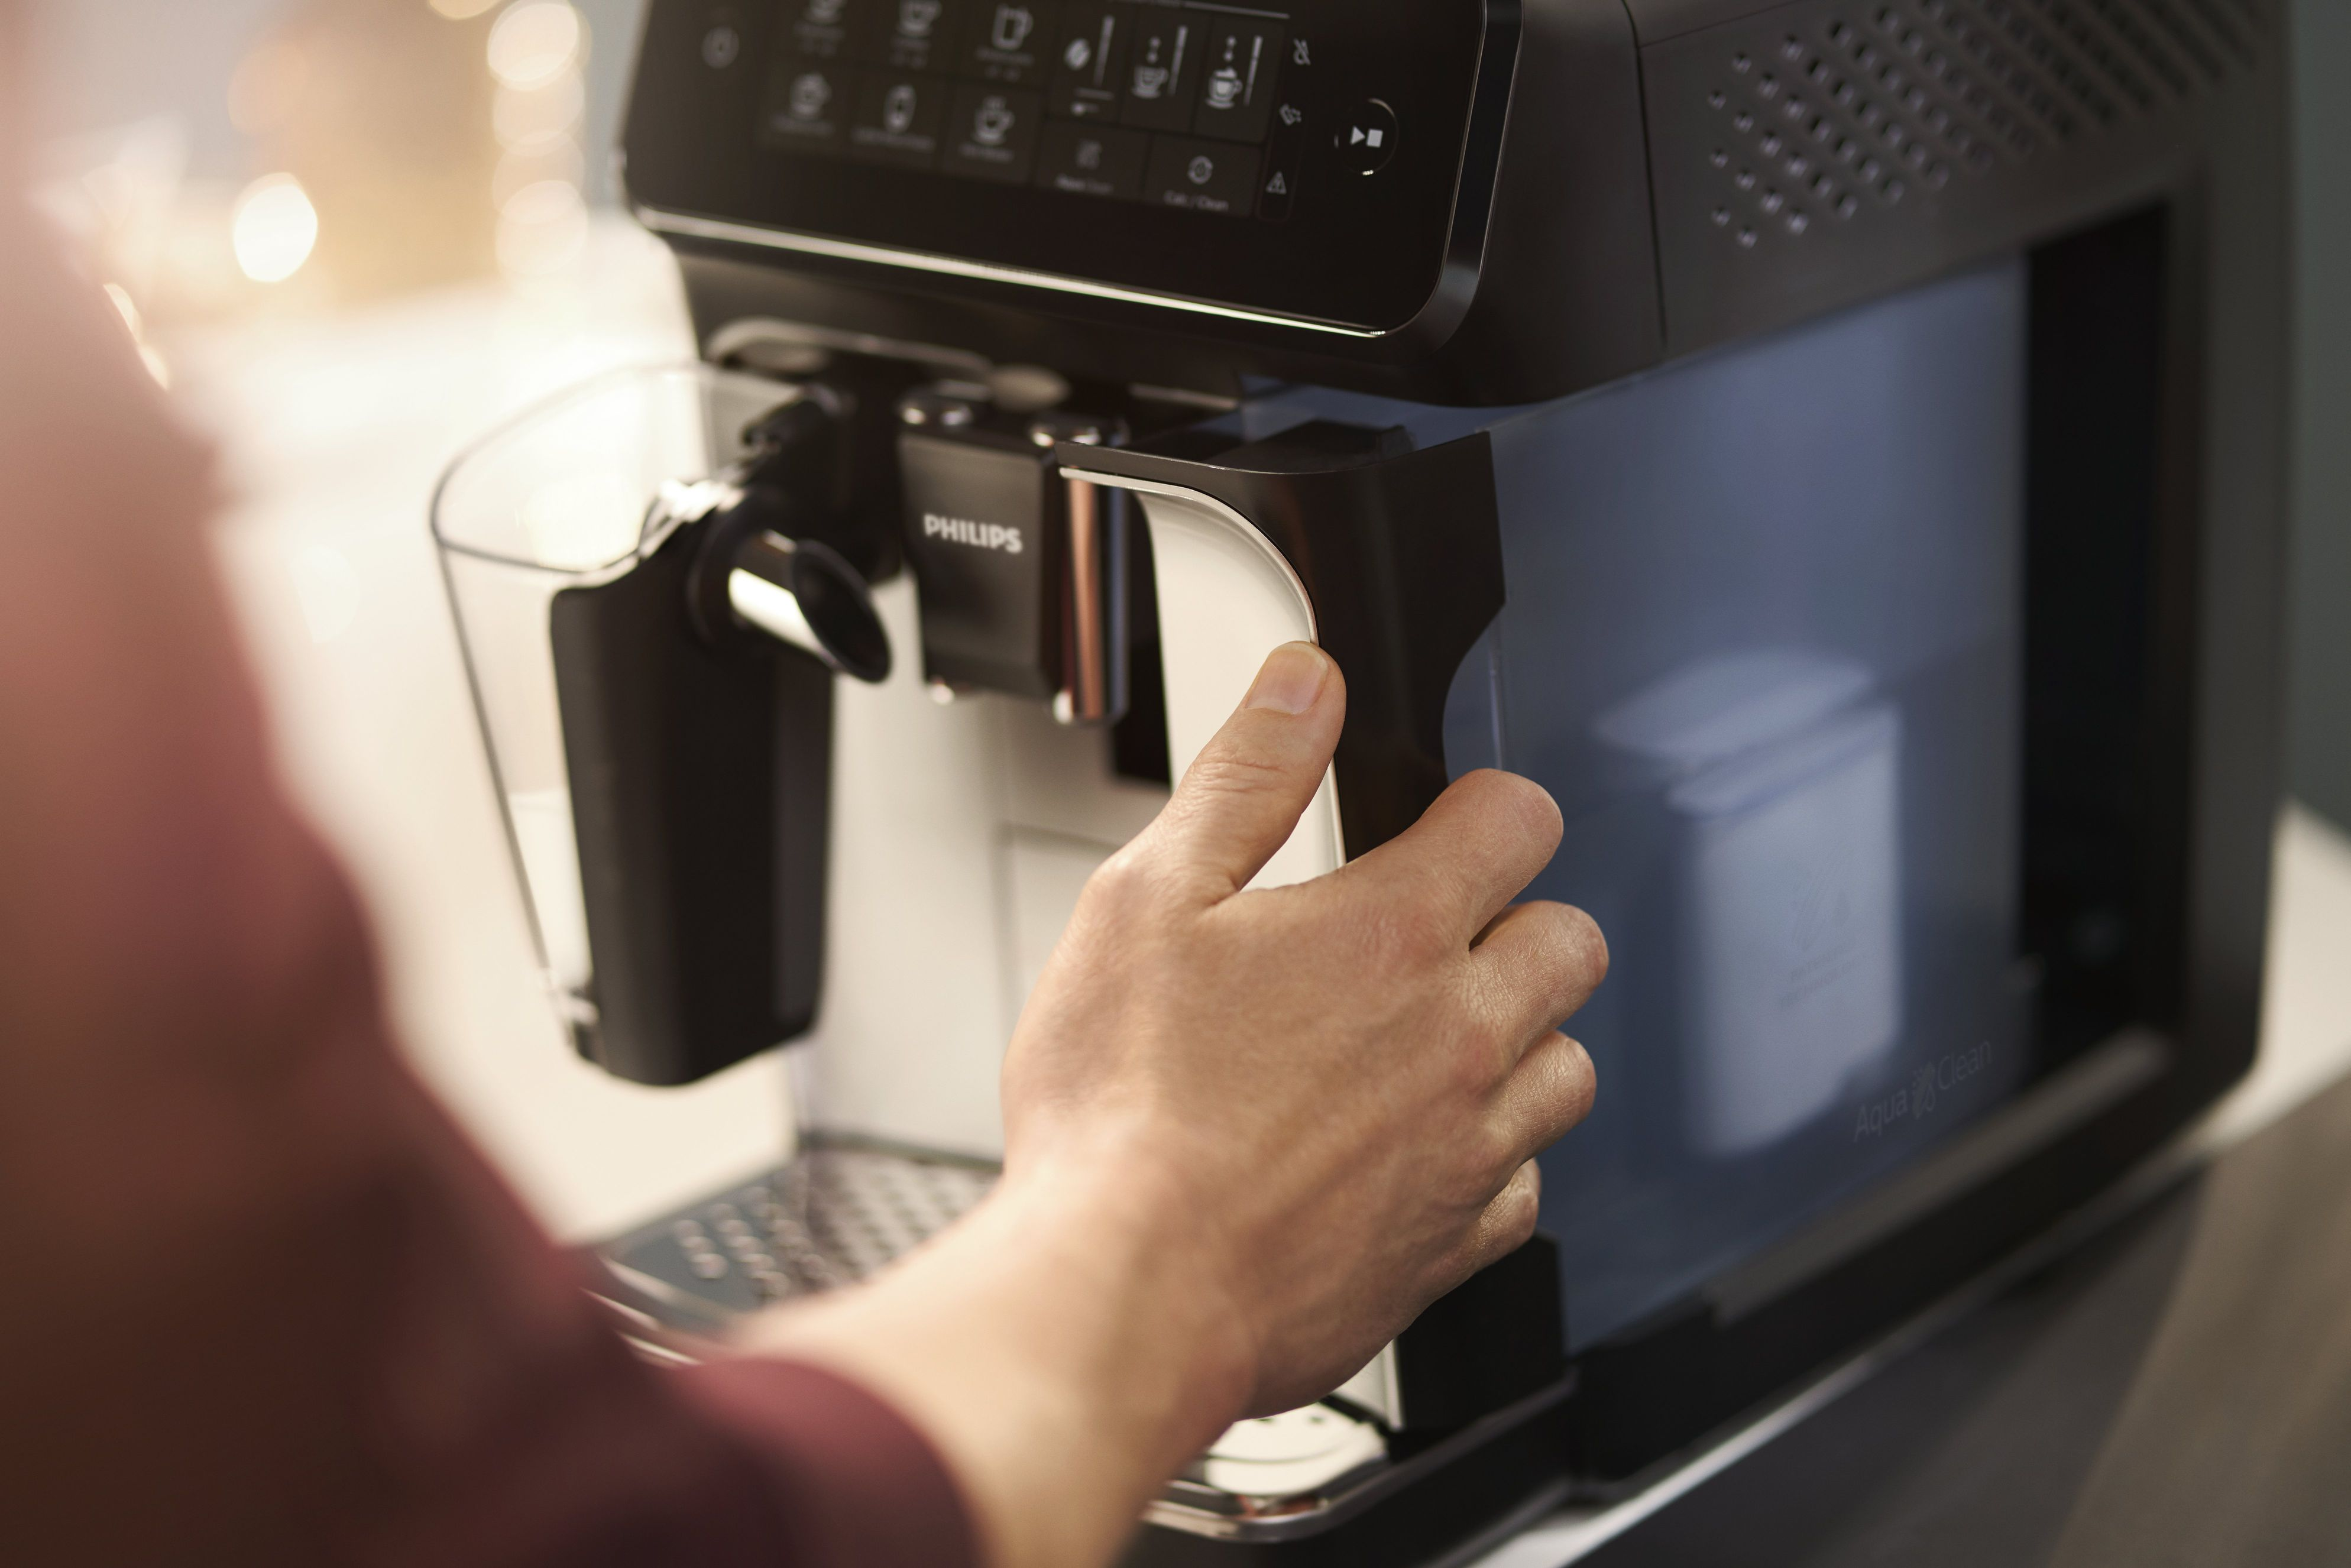 Philips' 3200 series LatteGo: Its sliding-out water tank makes LatteGo easy to use and maintain.